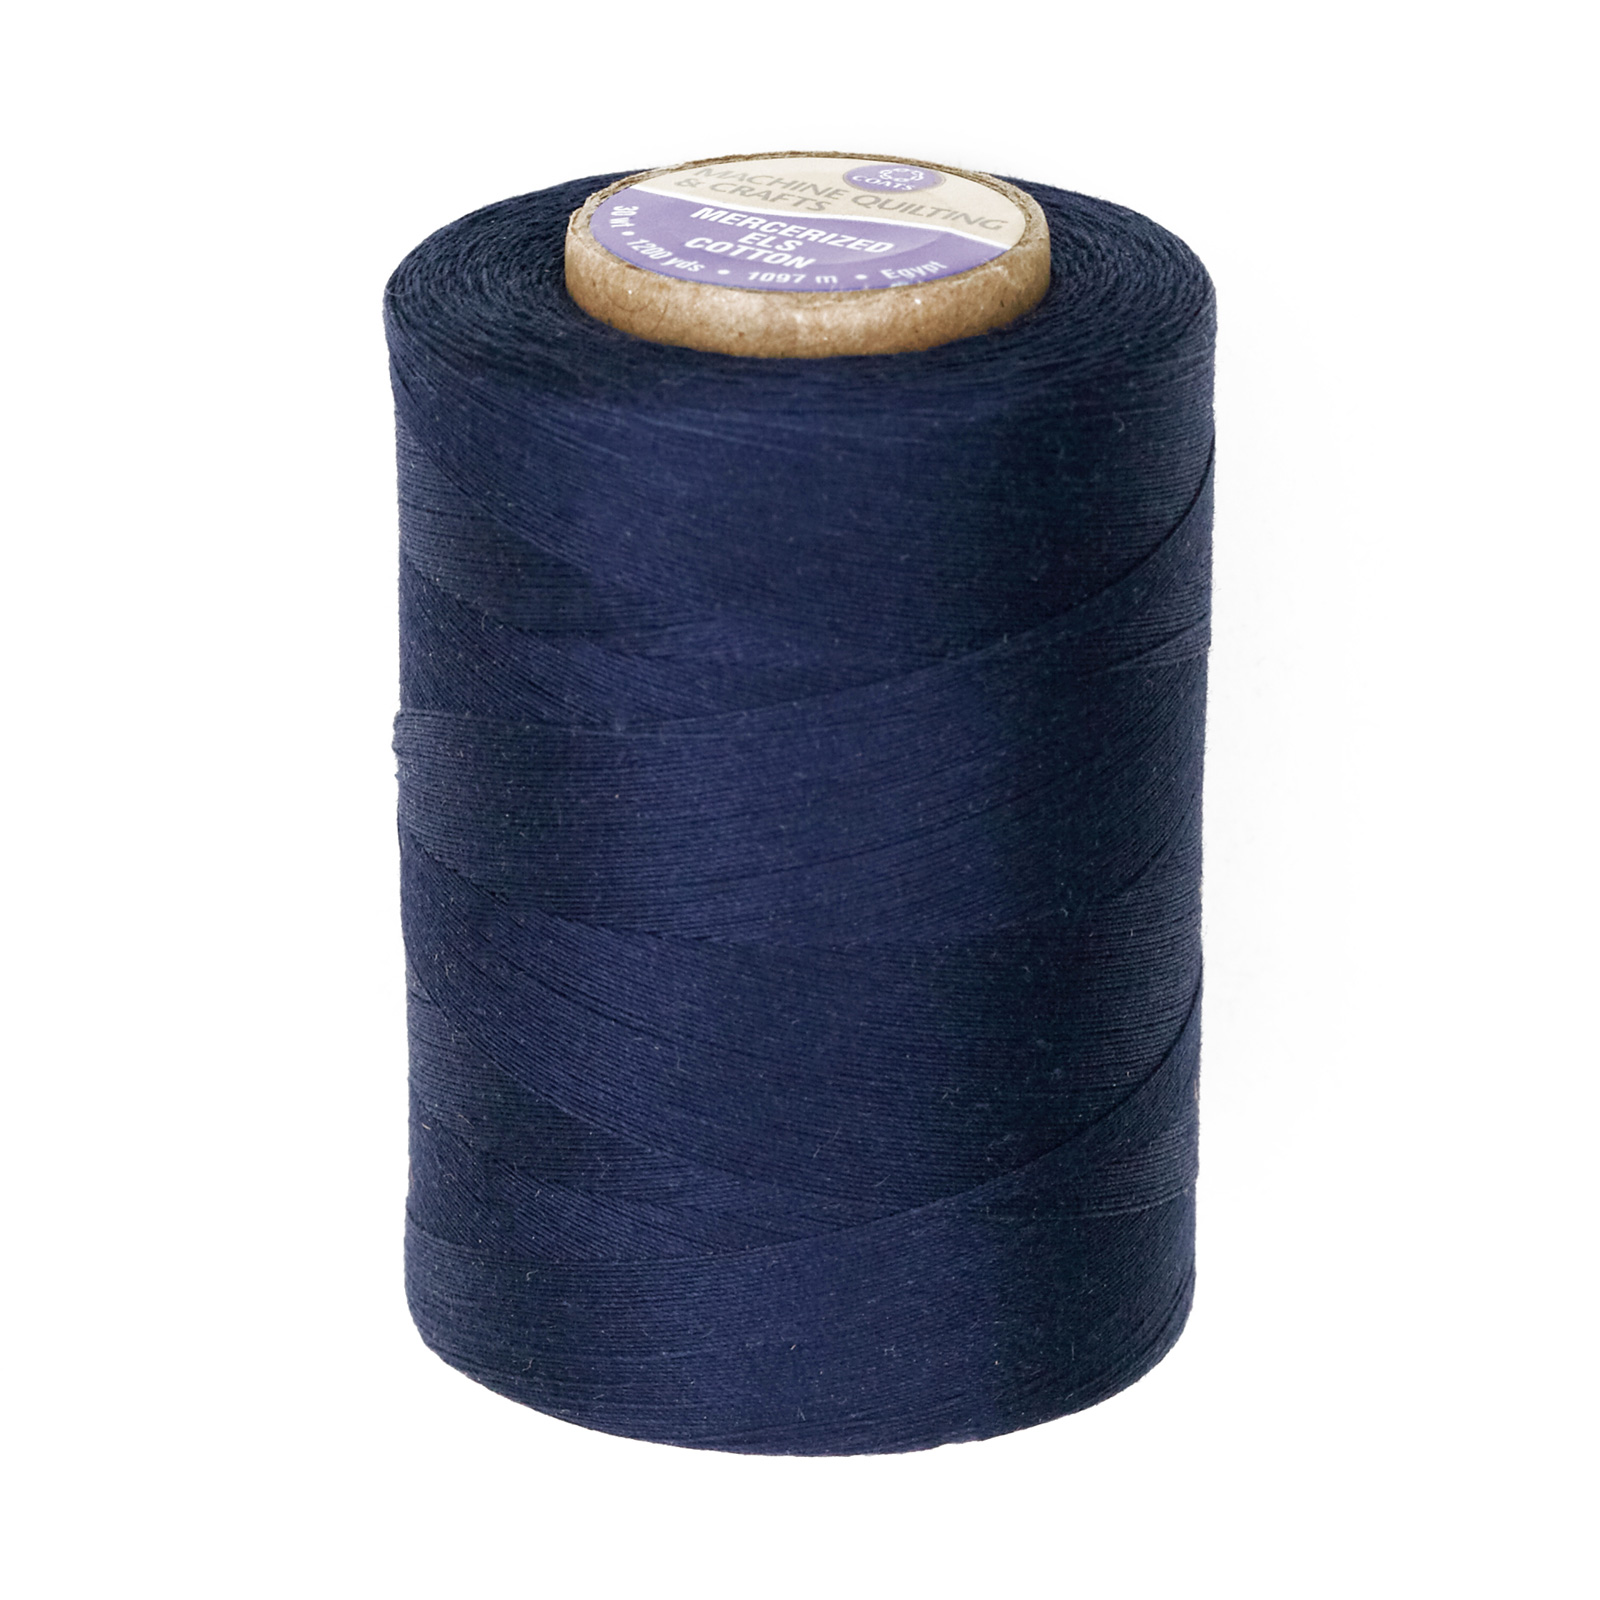 Coats & Clark Star Mercerized Cotton Quilting Thread 1200 Yd. Navy by Coats & Clark in USA